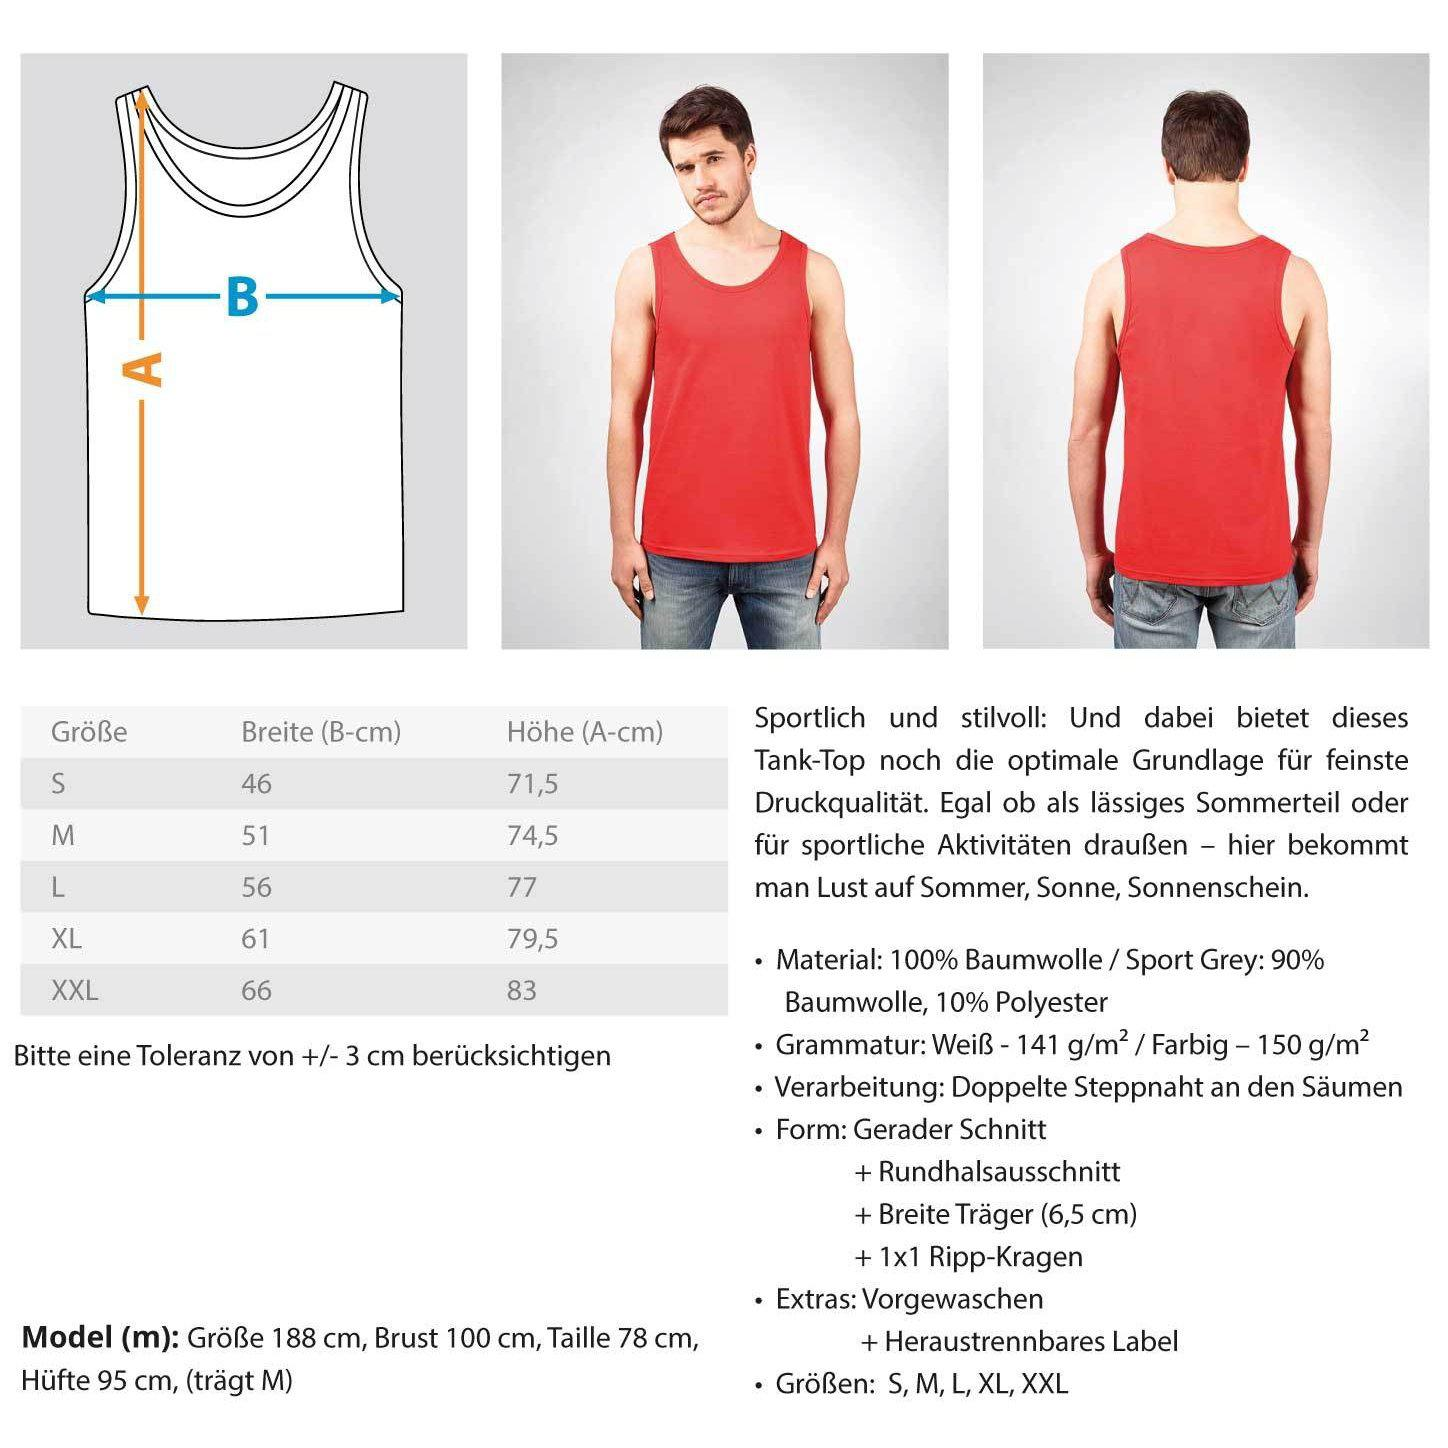 TRIANGLE RAVE ON!® - Herren Tanktop Herren Tank-Top - Rave On!® der Club & Techno Szene Shop für Coole Junge Mode Streetwear Style & Fashion Outfits + Sexy Festival 420 Stuff